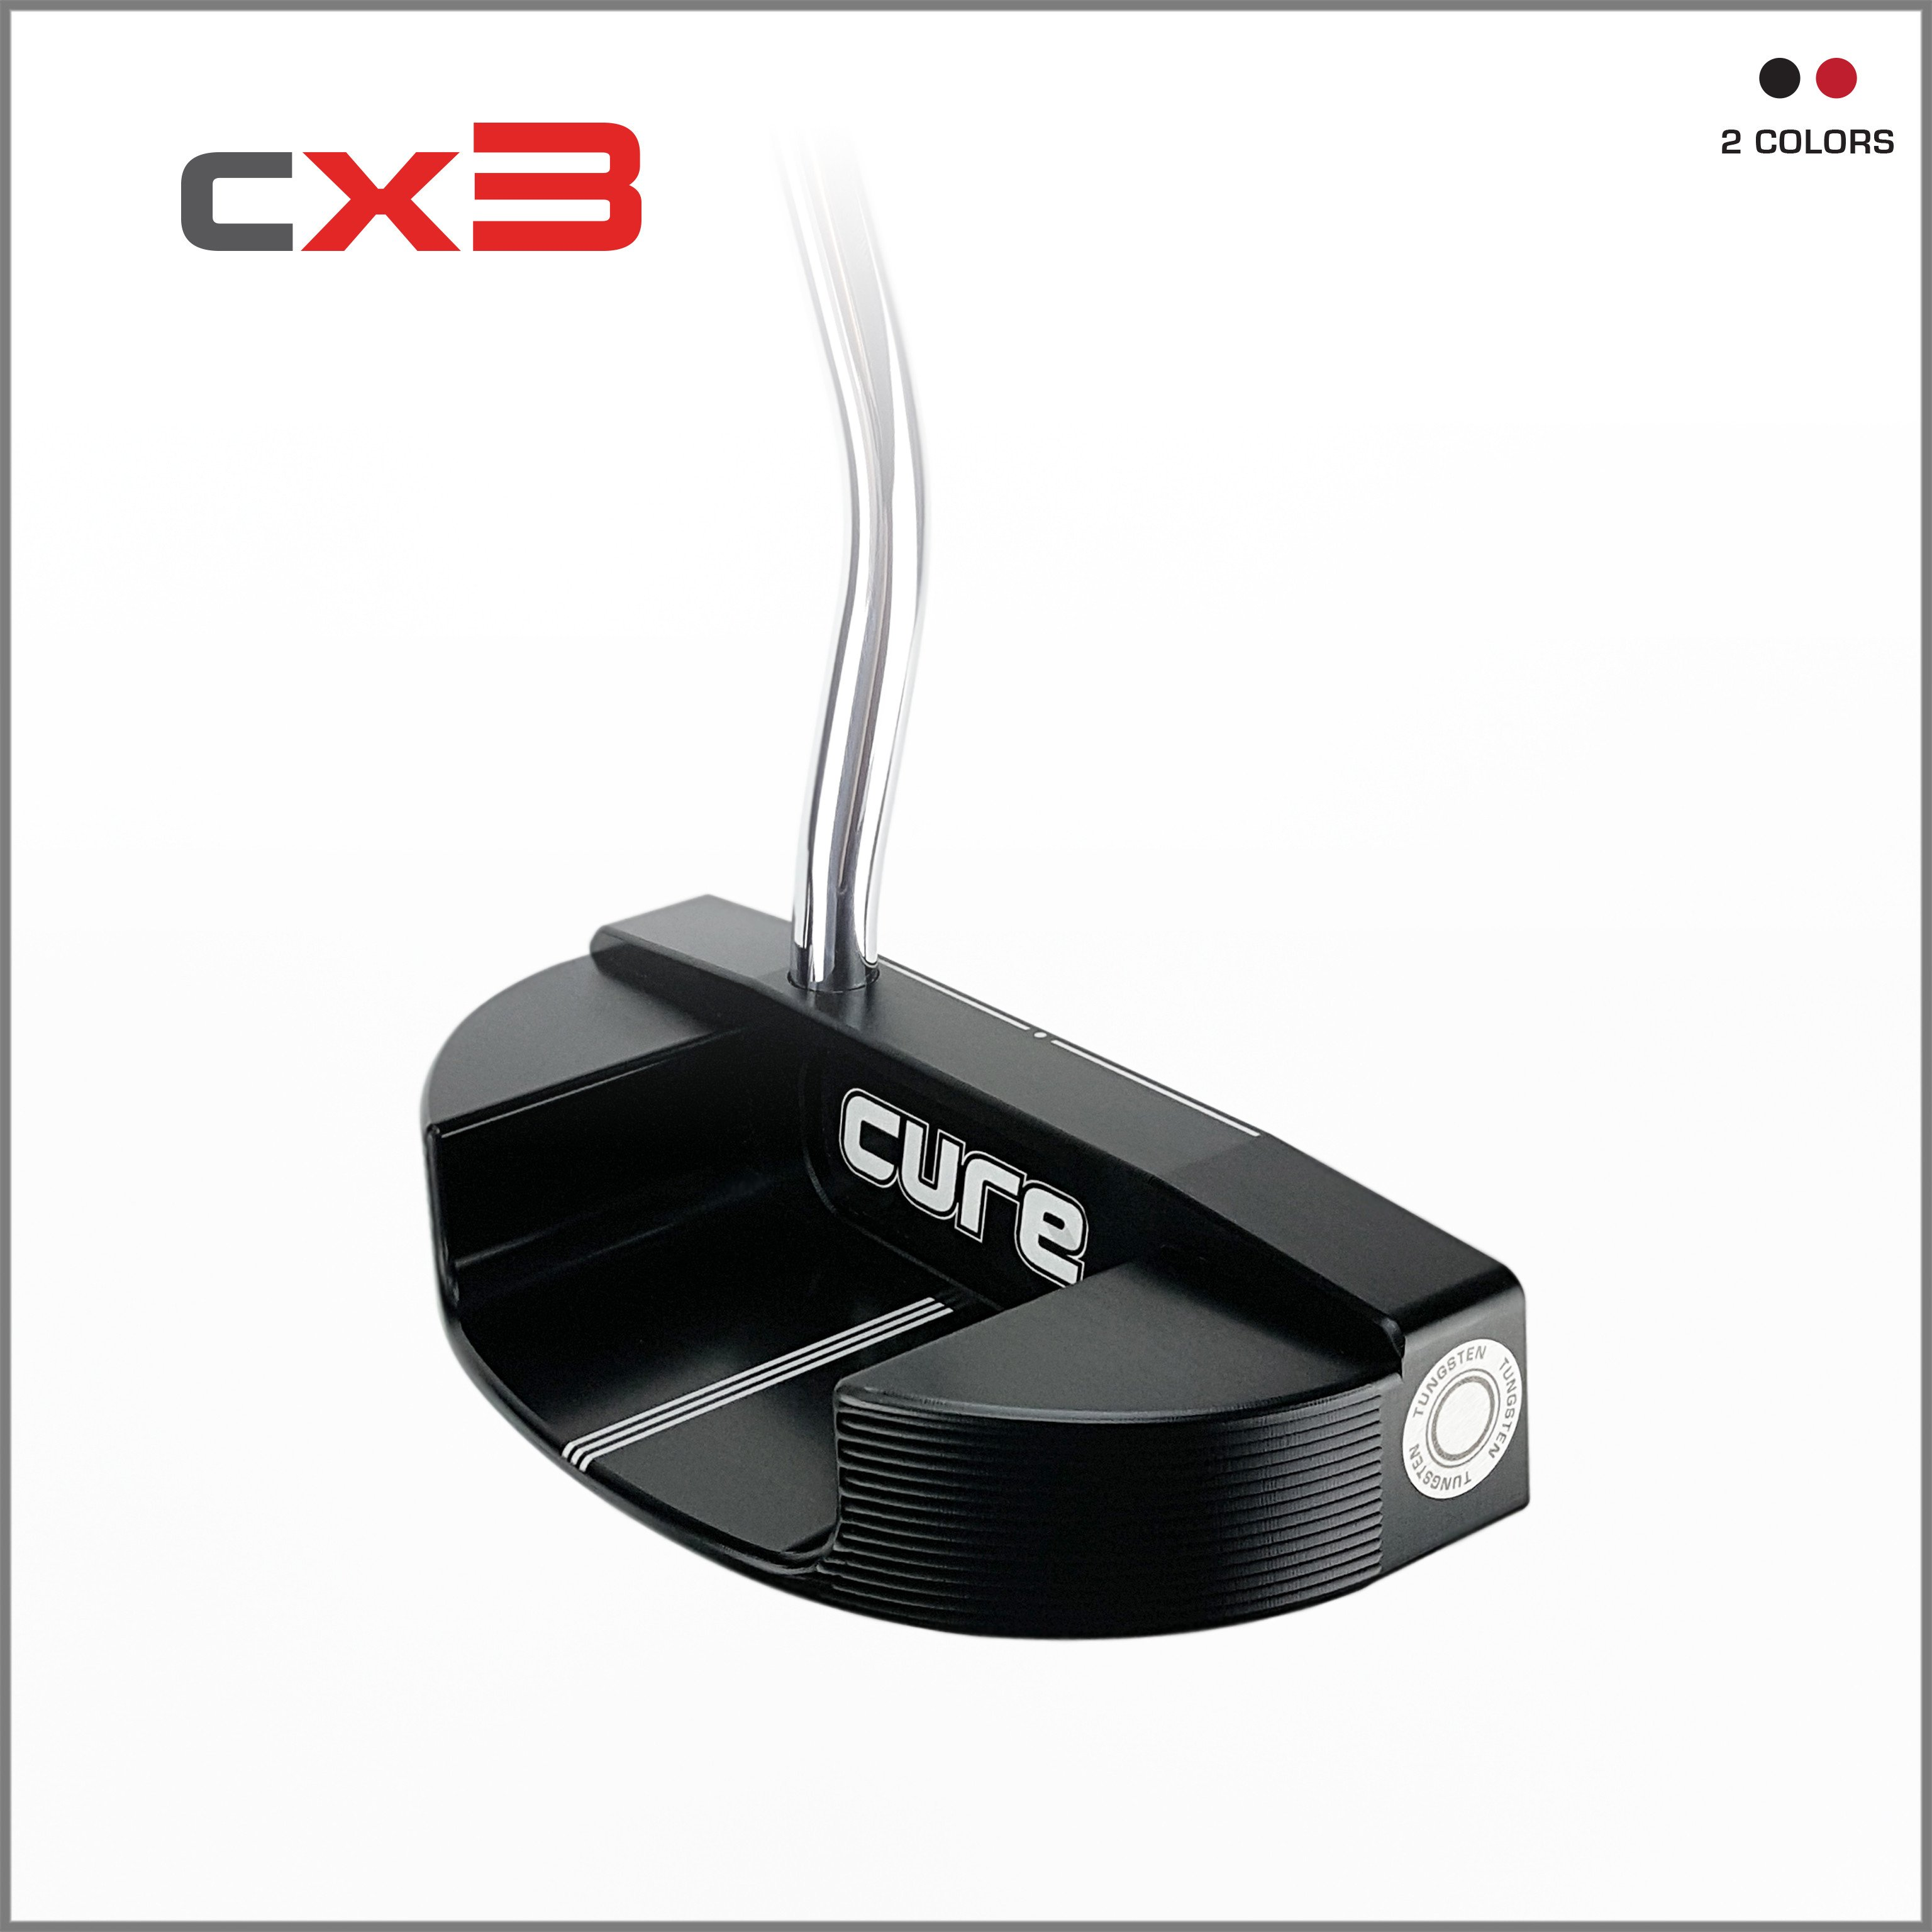 putter, Cure, CX3, oversized putters